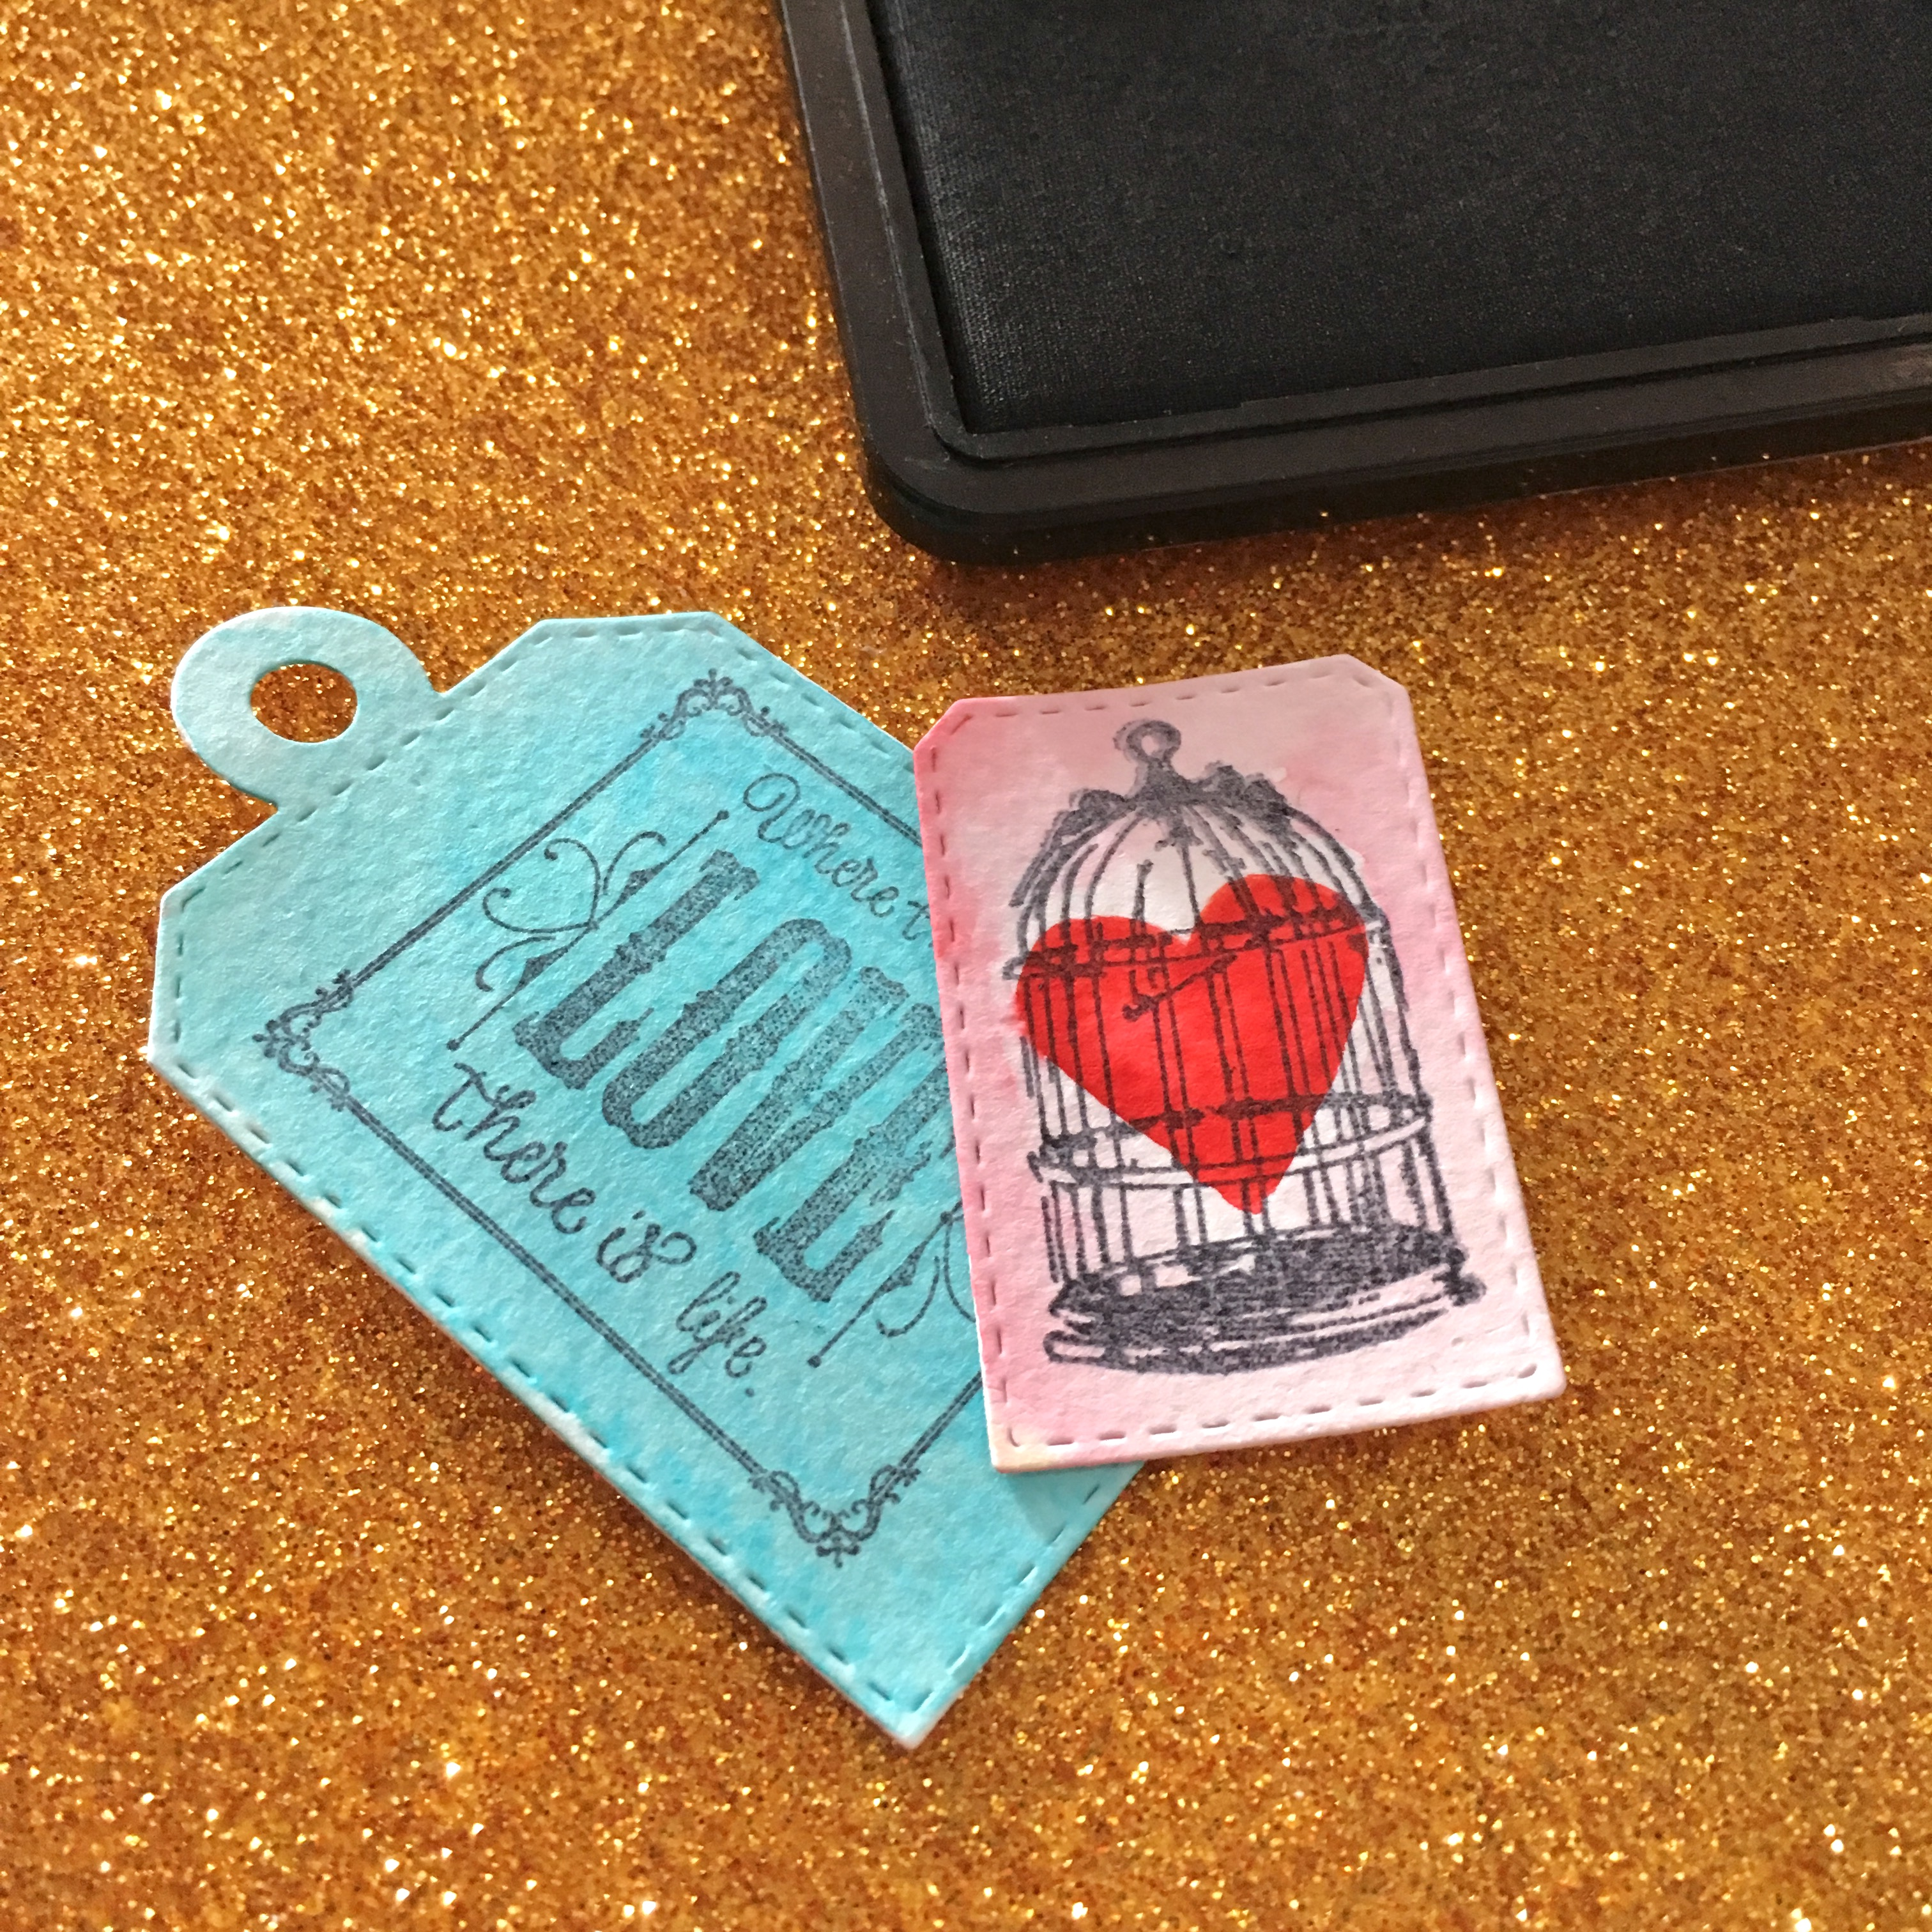 Blue and pink tags. The blue tag has stamp LOVE and the pink - a birdcage with a red heart inside